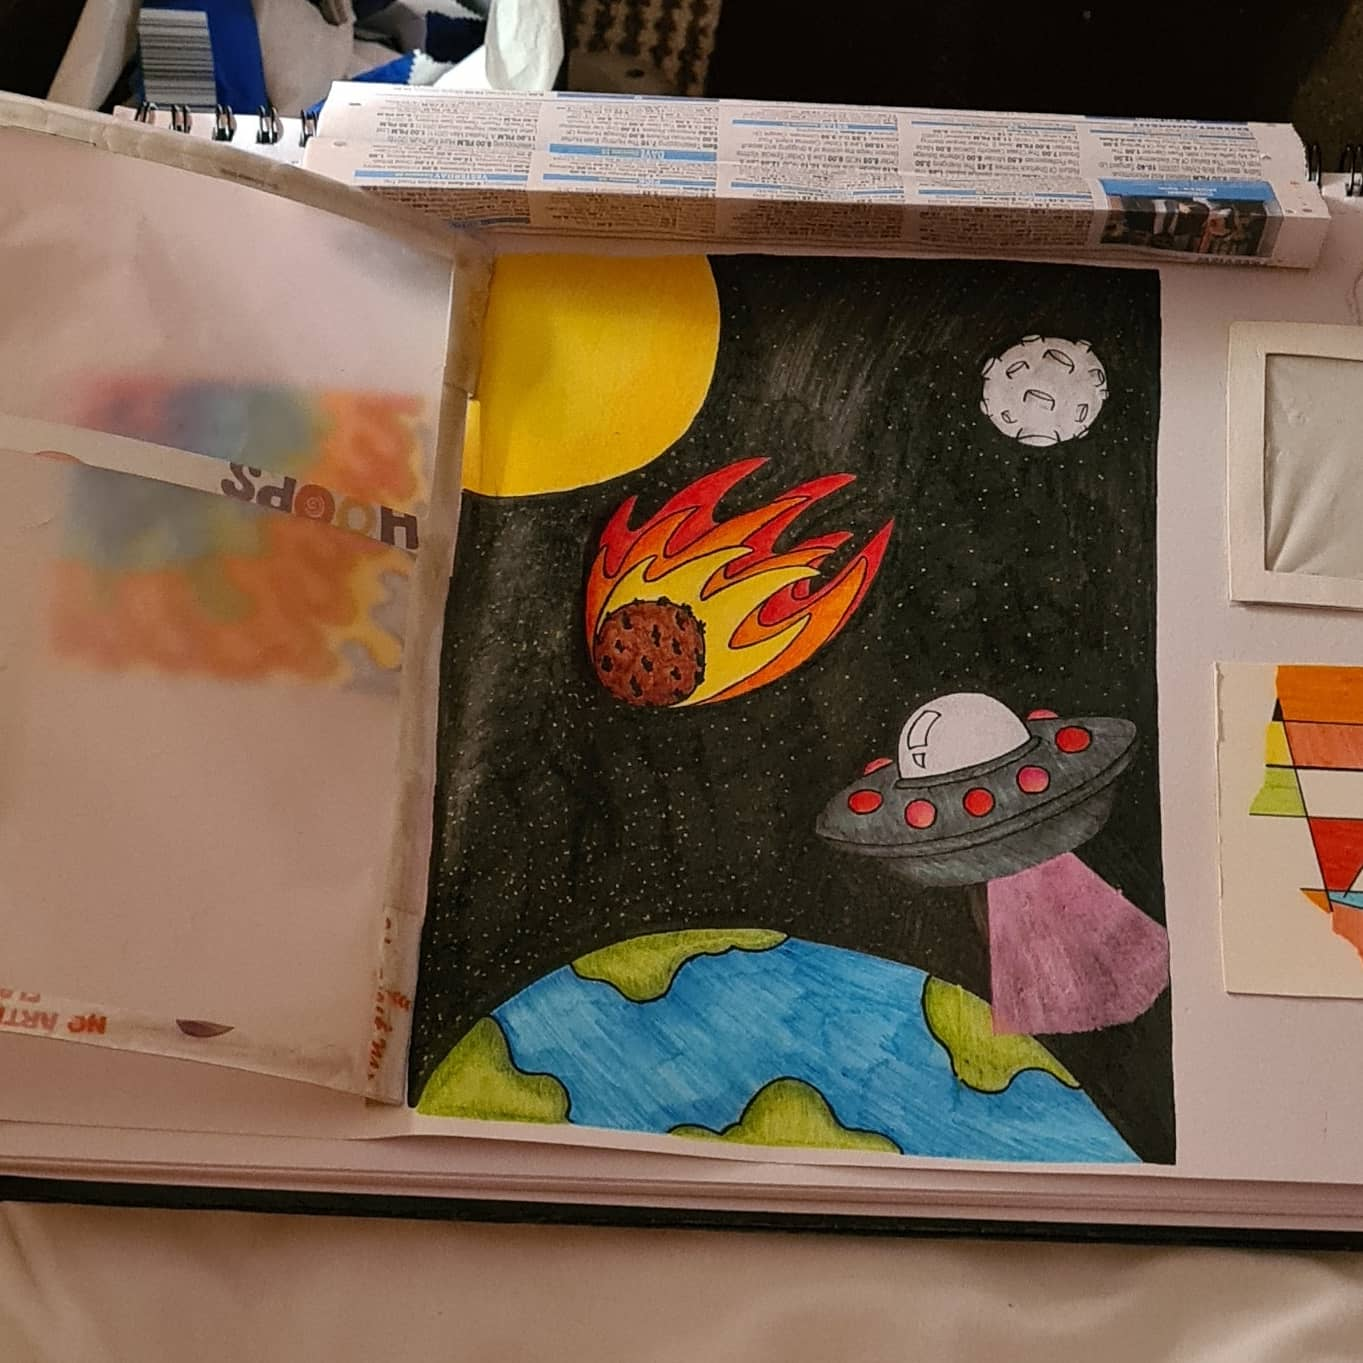 This is a picture of a window scene that has been made out of recycled materials. On the left of the picture their is a small picture with a wavy pattern on it. The colours that are on the picture are purple, light blue, light green, orange, red and yellow. Next to the picture there is a brown cardboard window that has a space scene inside of it, the space scene includes the earth, sun, moon, meteor with flames, alien spaceship and stars. Above the window there is a handmade pull down blind that has been made out of folded newspaper. To the right of the newspaper blind there is a handmade cardboard mirror, below that there is another small picture which is made up of triangular shapes and lines. Some of the shapes have been coloured in using the colours, yellow, light green, red, orange, black, light blue and pink.